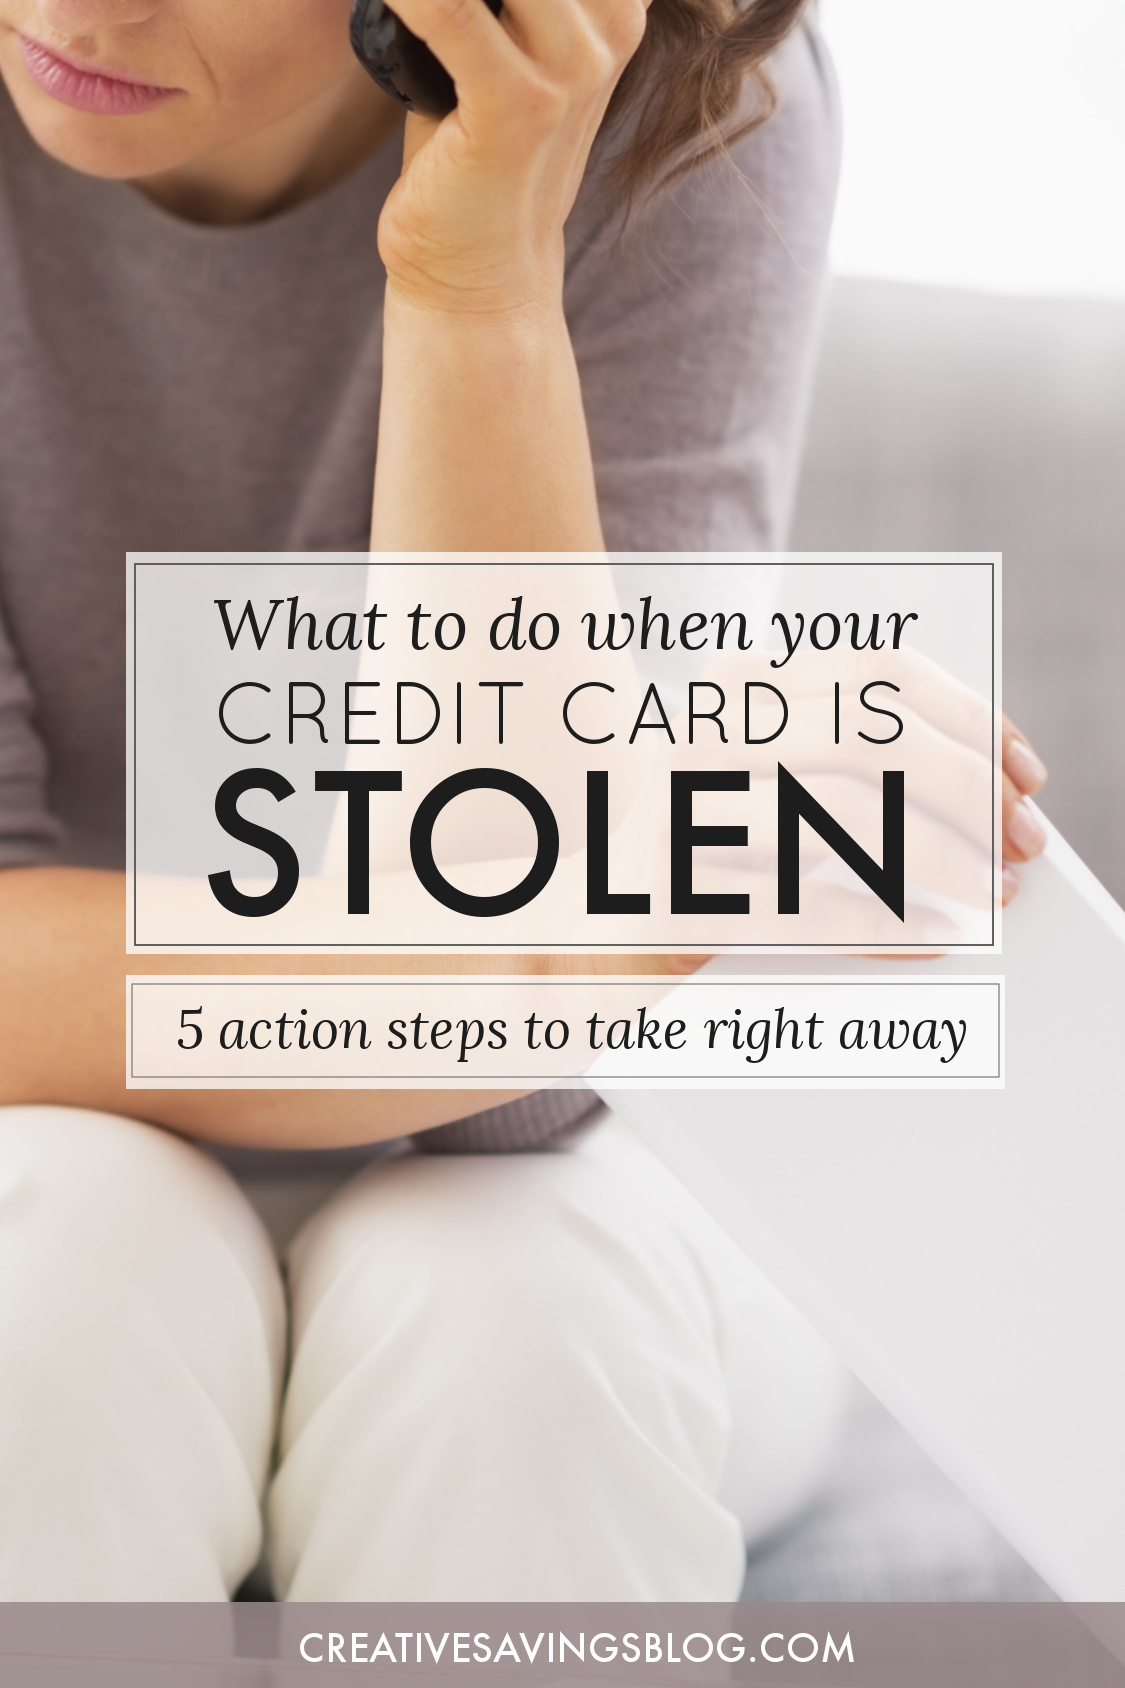 Did someone just hack into your credit card account? Don't let panic paralyze you into inaction. Here are 5 steps to take RIGHT NOW so you can protect your financial information and stay safe. Psst....those of you who haven't experienced this yet, save this post for later so you know exactly what to do just in case!